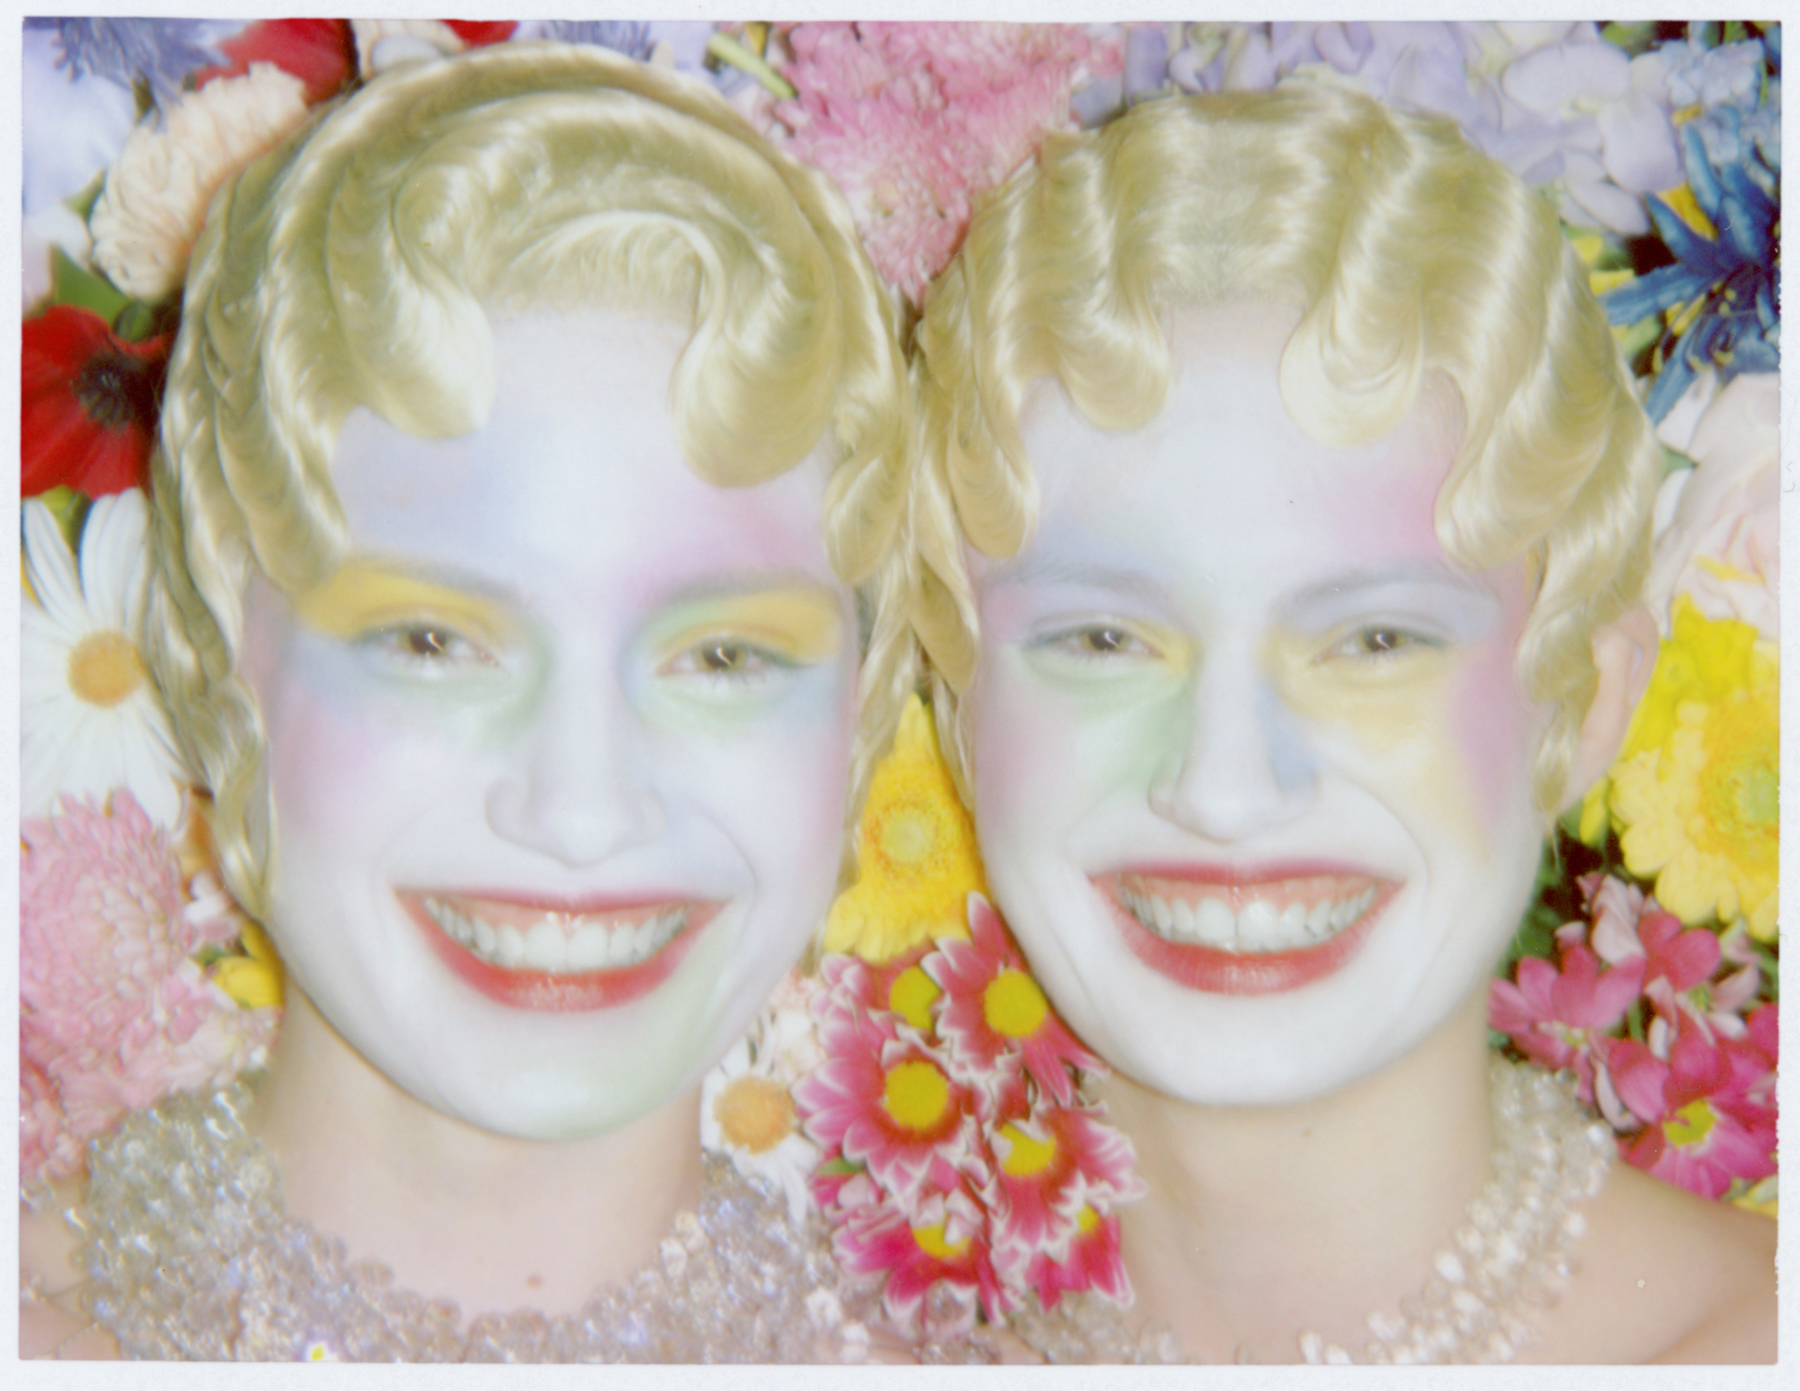 Twins Beauty Grant James-Thomas online res-7NEW.jpg